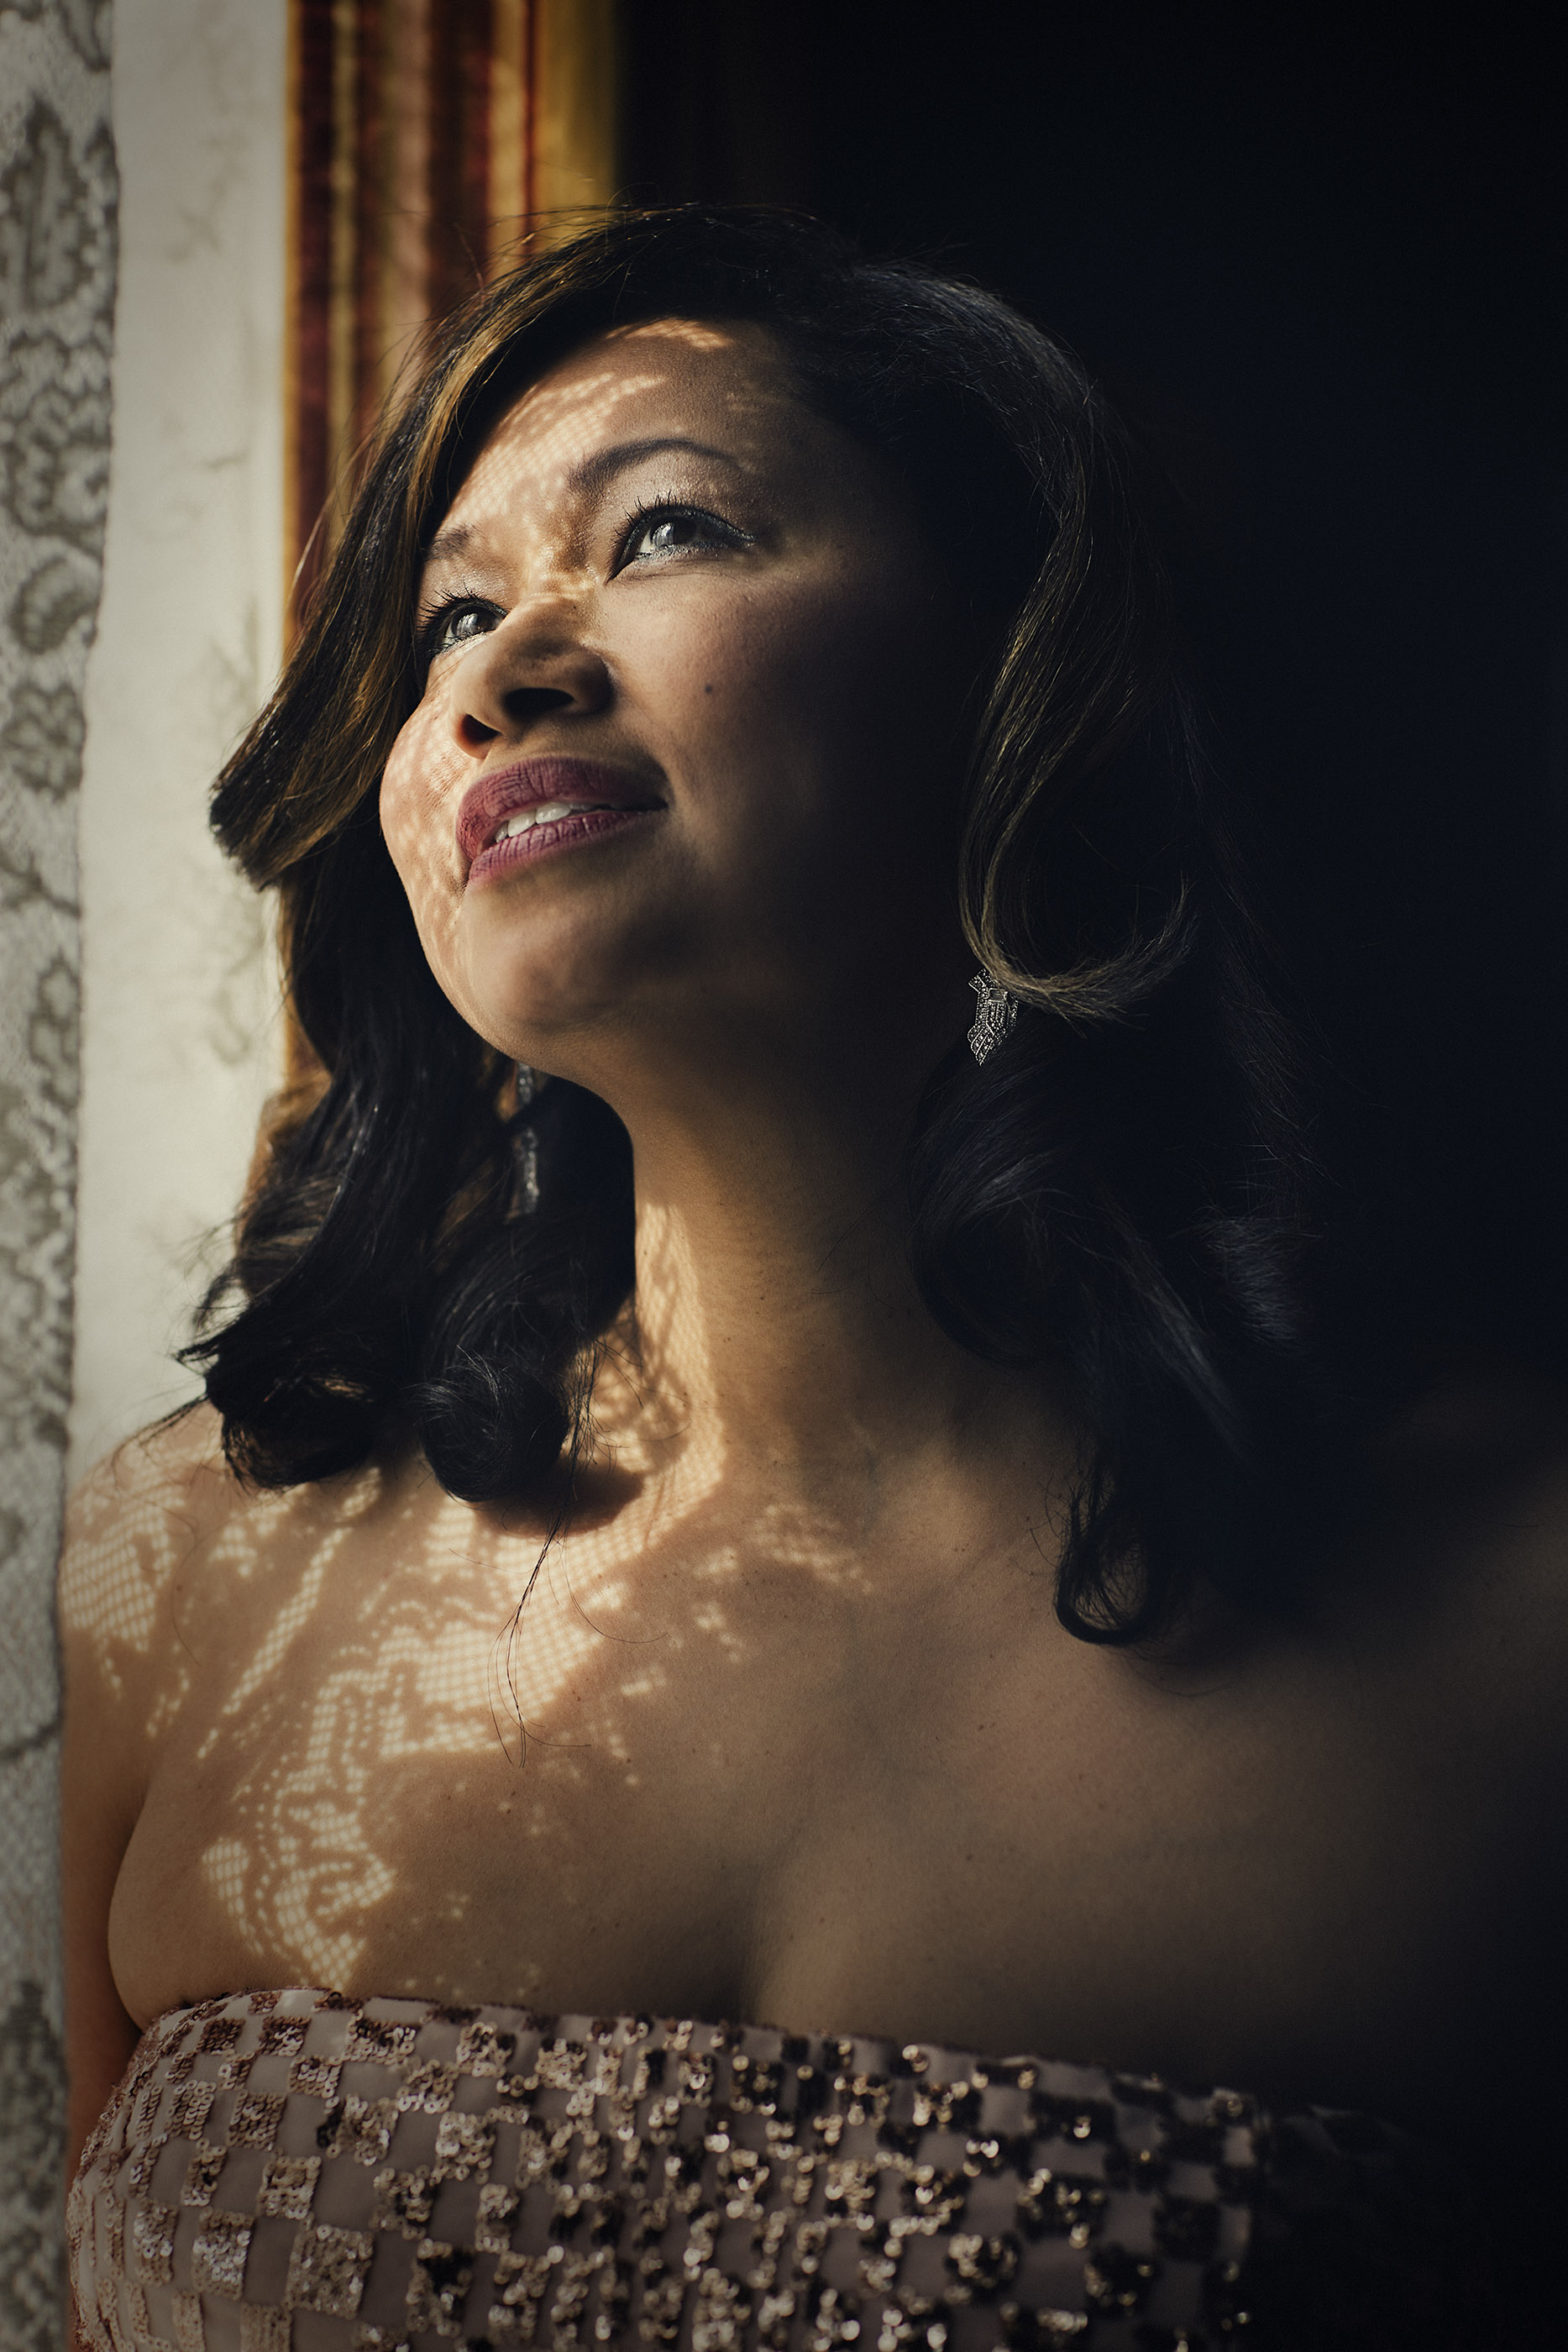 Portrait of singing performer, Vanessa Thomas of Lawrence, KS.